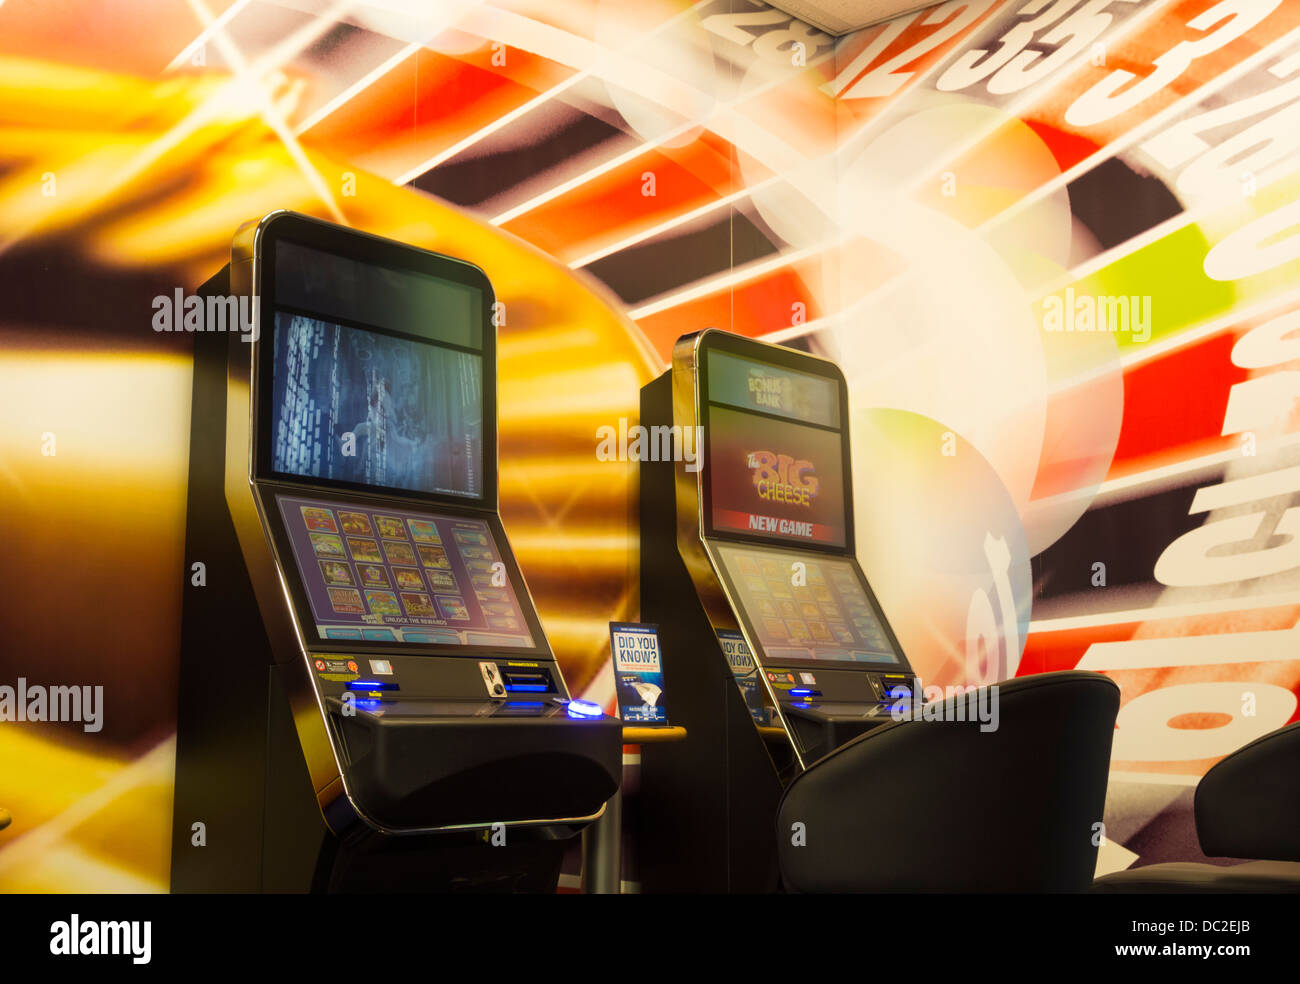 Fixed odds roulette machines, also known as fixed odds betting terminals in Corals Bookmakers, England, UK - Stock Image